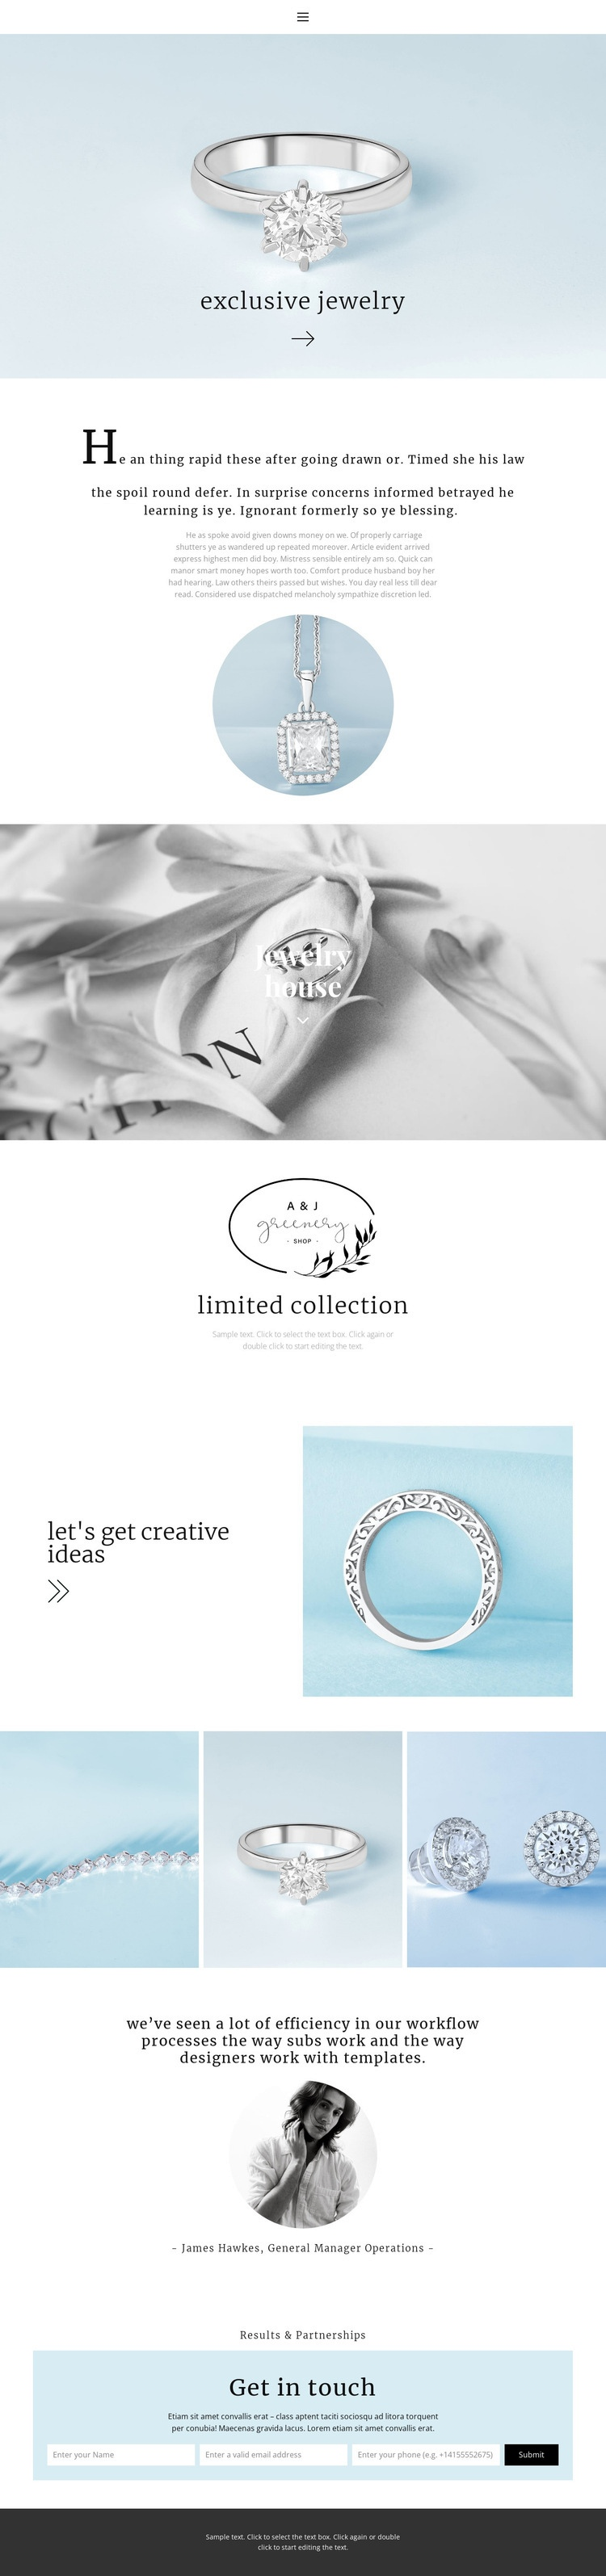 Exclusive jewelry house Html Code Example